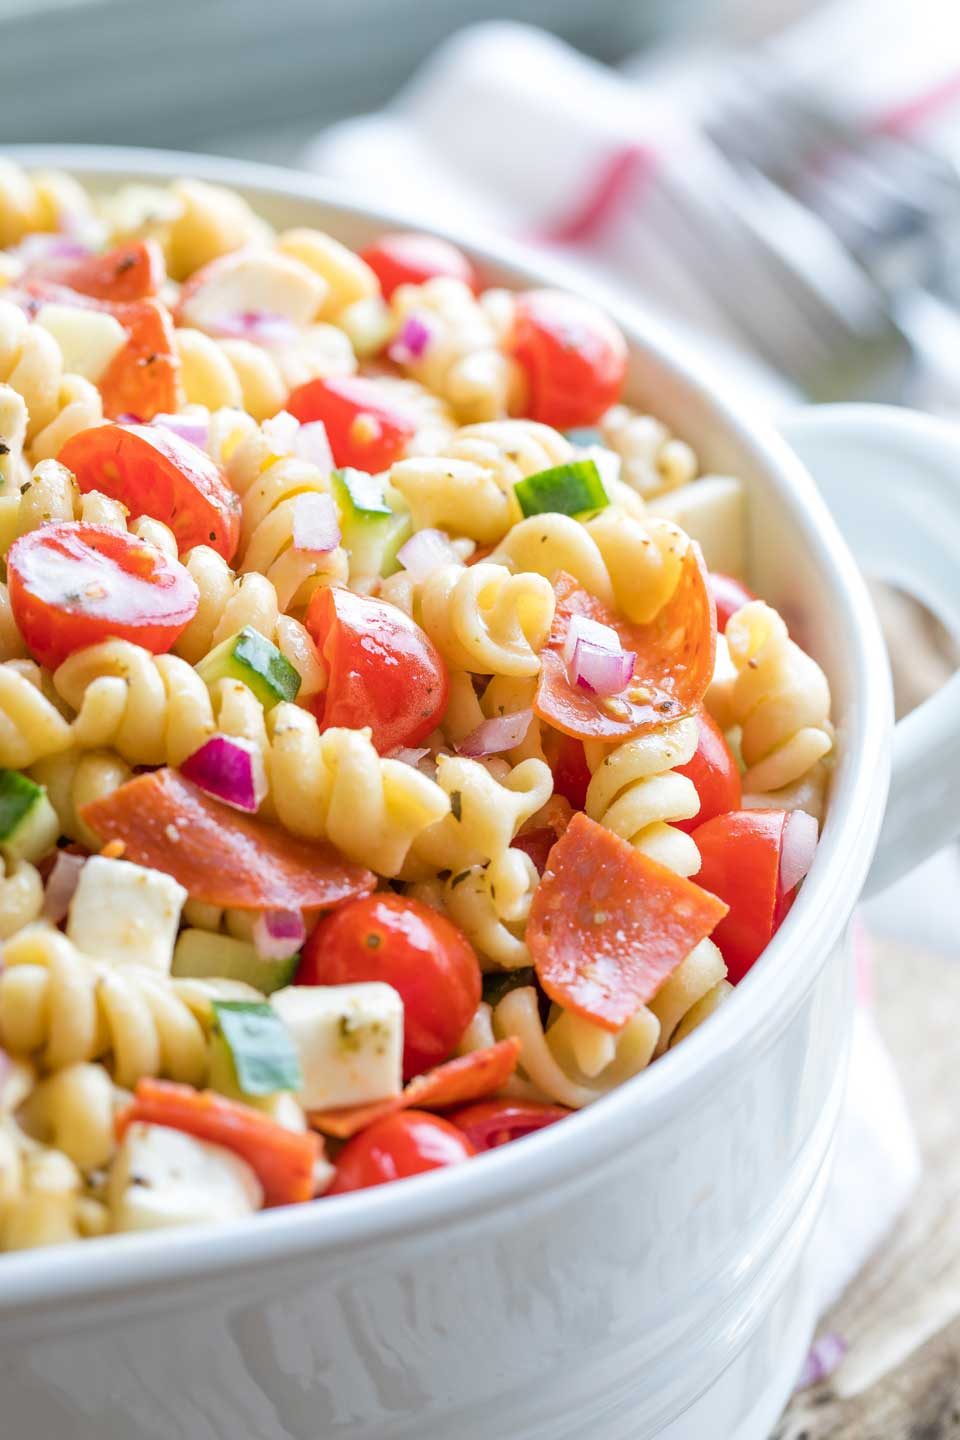 Closeup of the right side of a white serving bowl full of this pasta salad with forks and a red-striped cloth in the background..